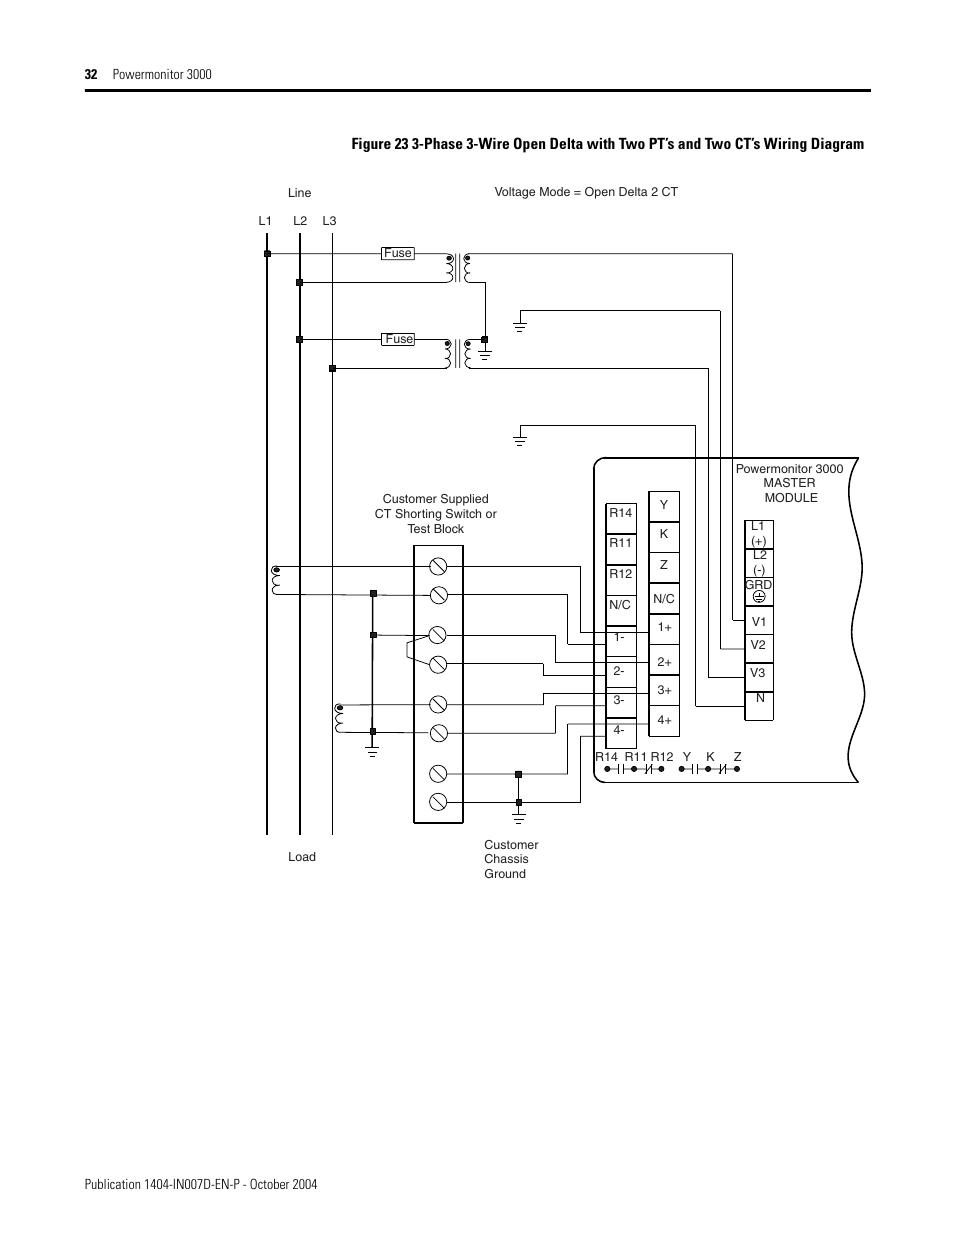 hight resolution of rockwell automation 1404 m4 m5 m6 m8 powermonitor 3000 installation instructions prior to firmware rev 3 0 user manual page 32 66